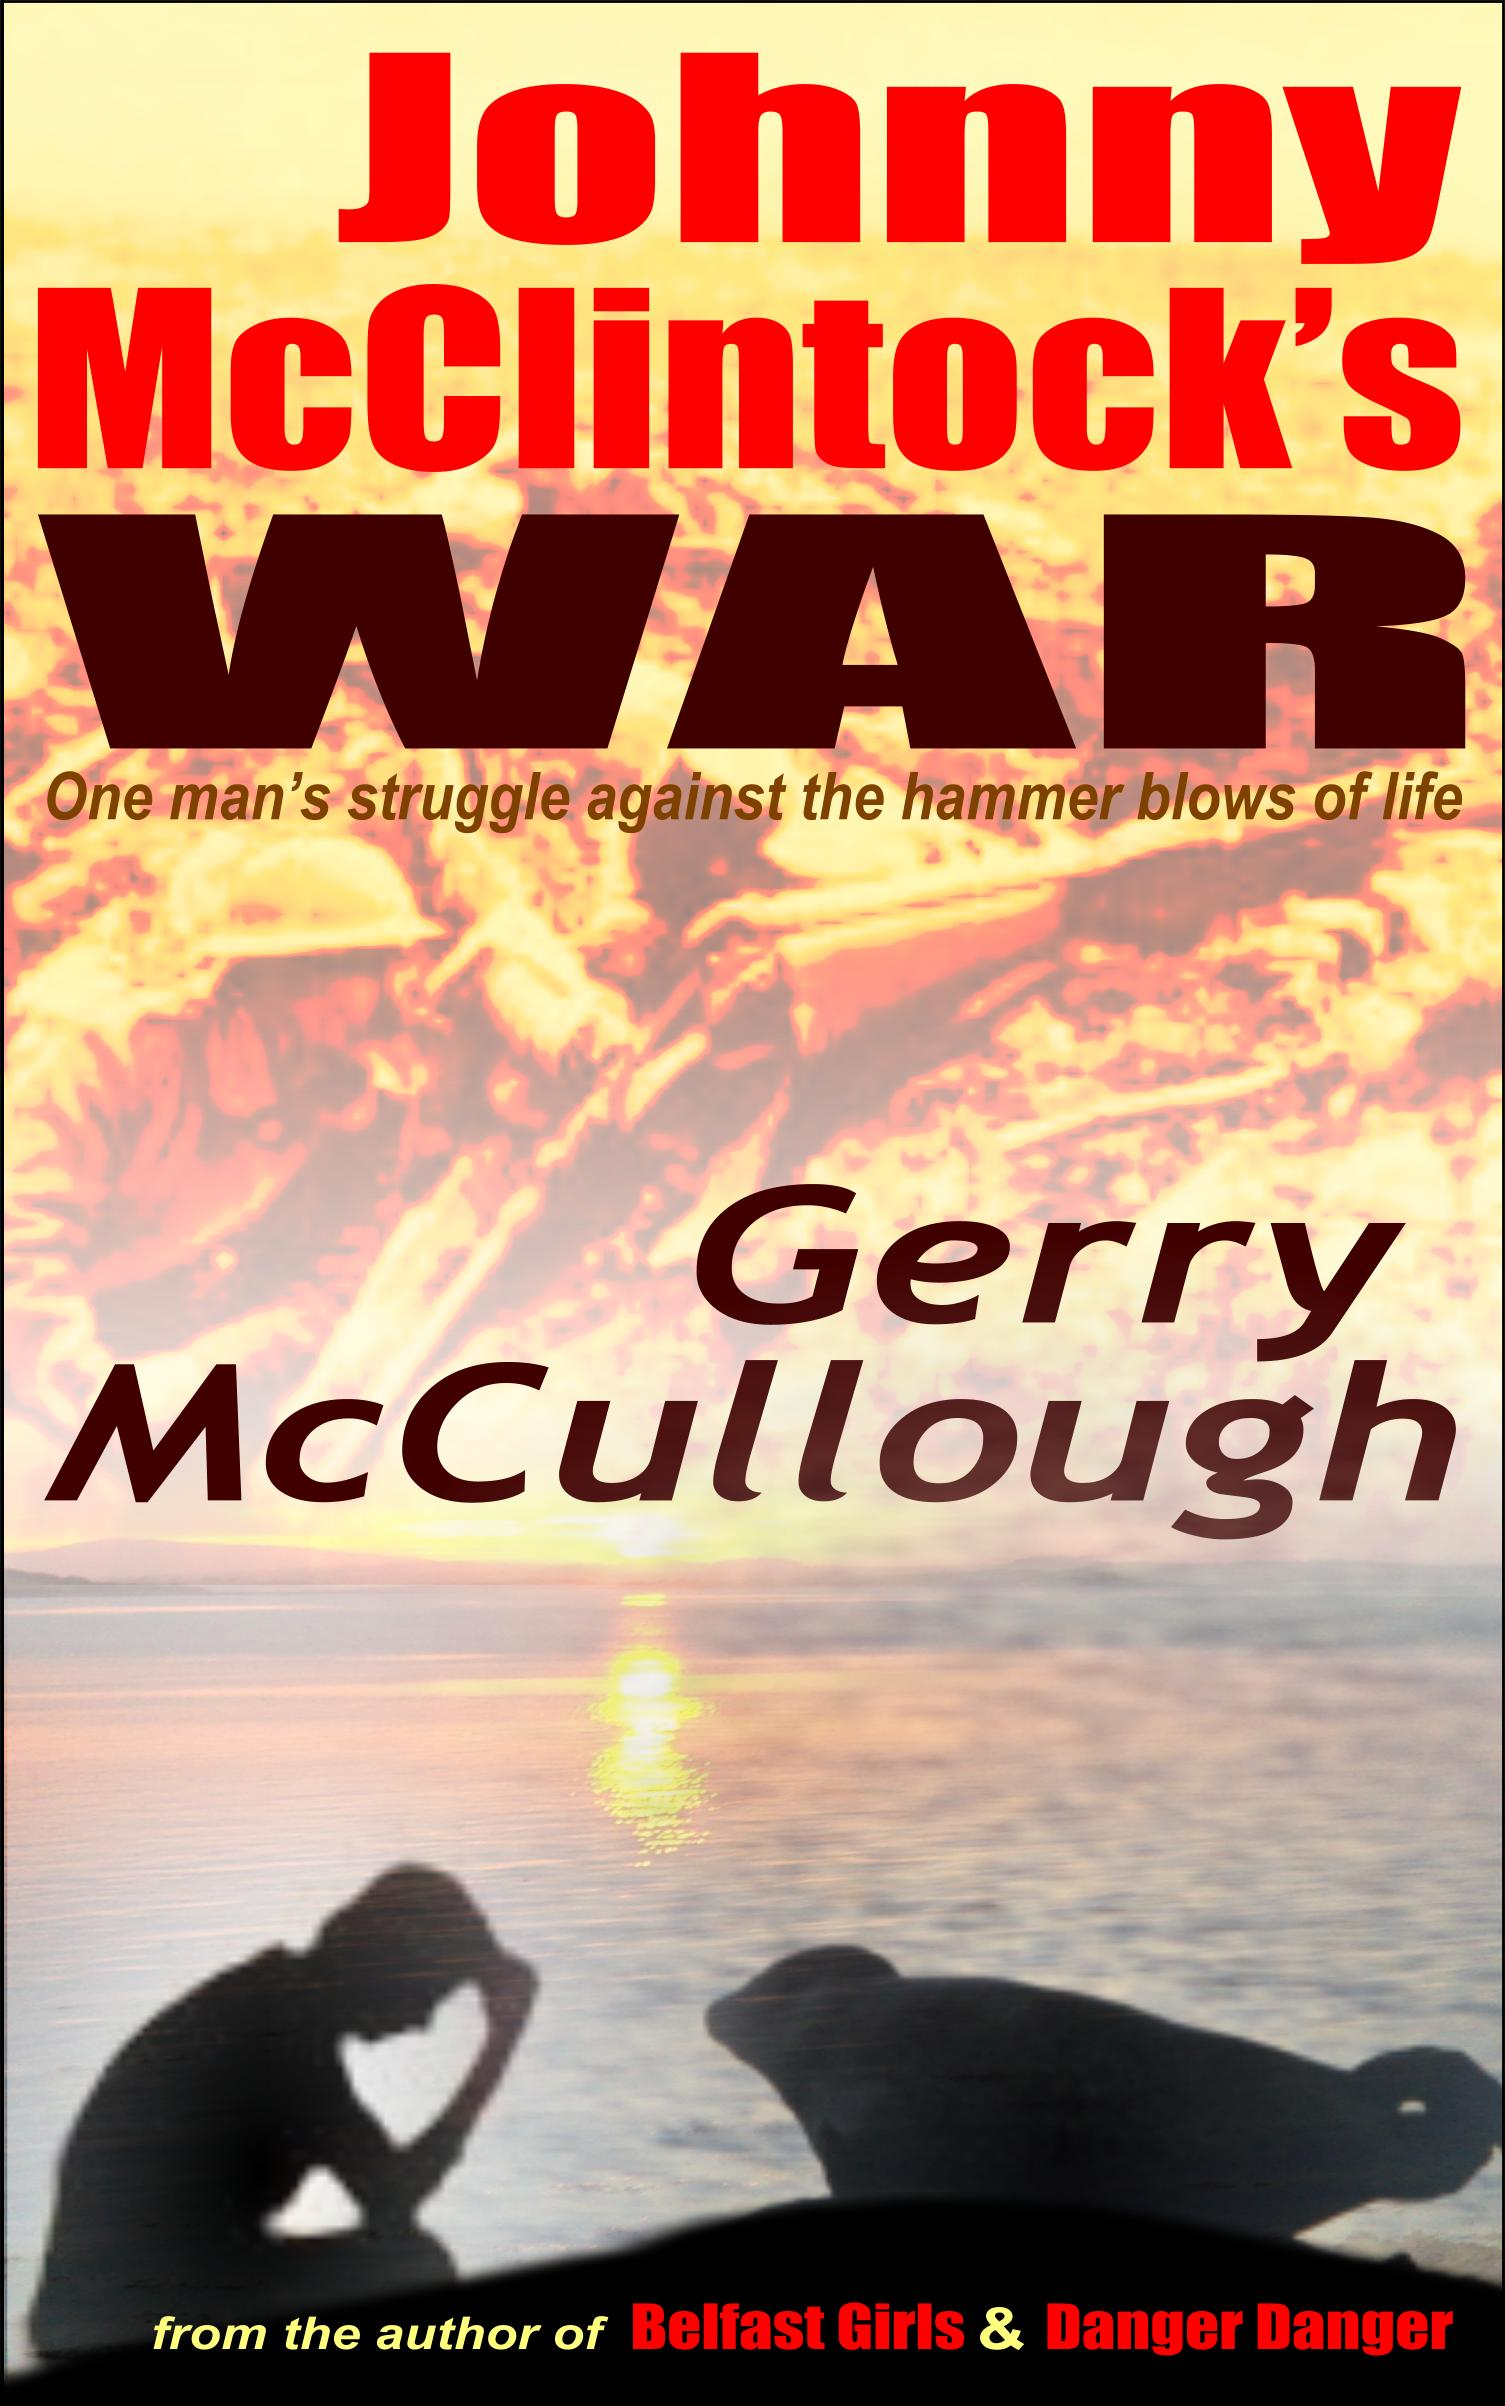 Johnny McClintock's War - more info